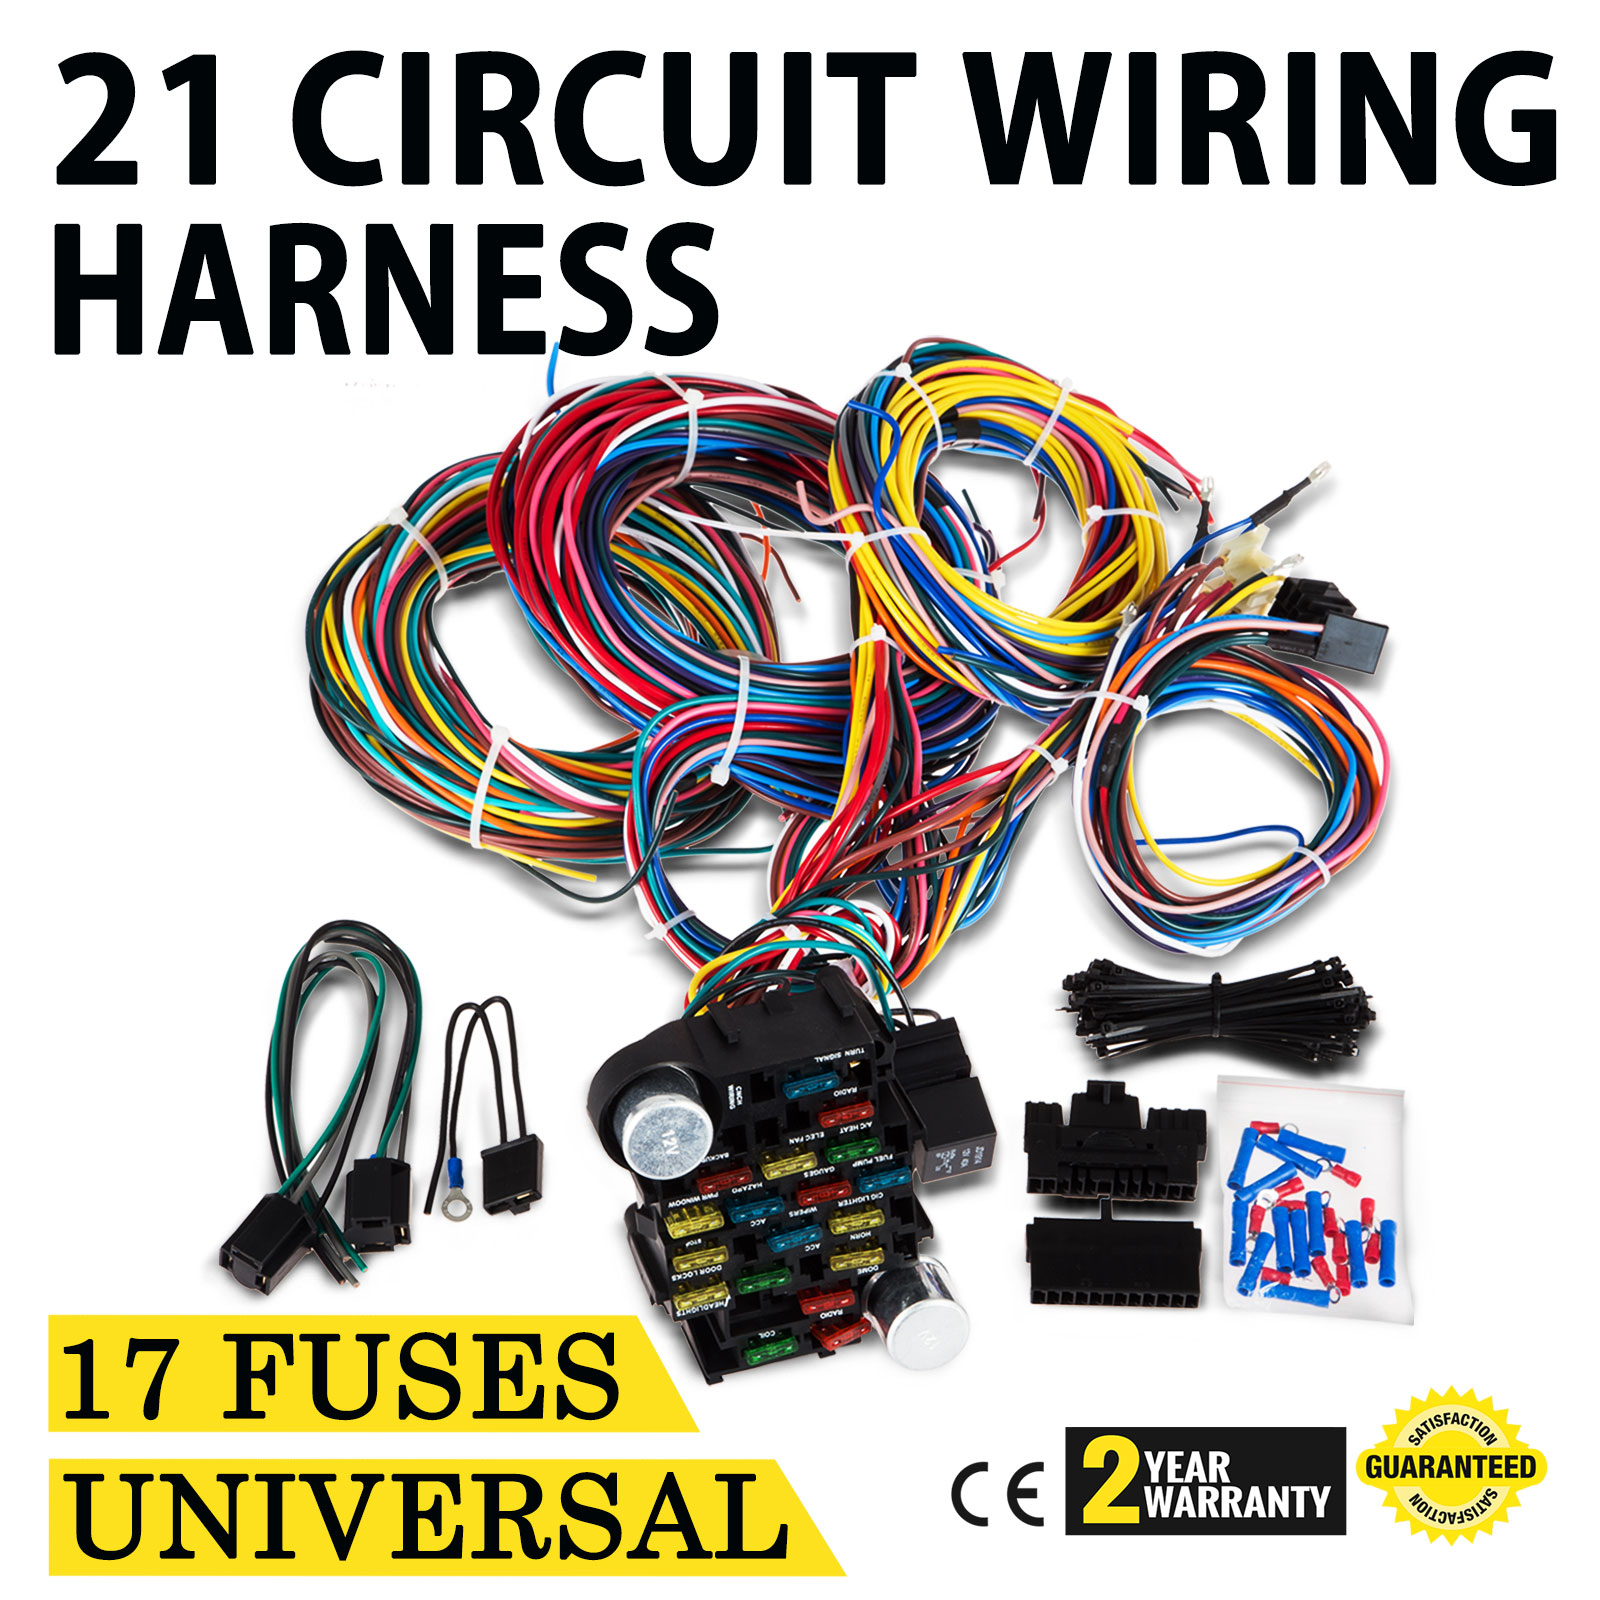 21 Circuit Wiring Harness Universal Wire Cigarette Lighter Wires Power Windows